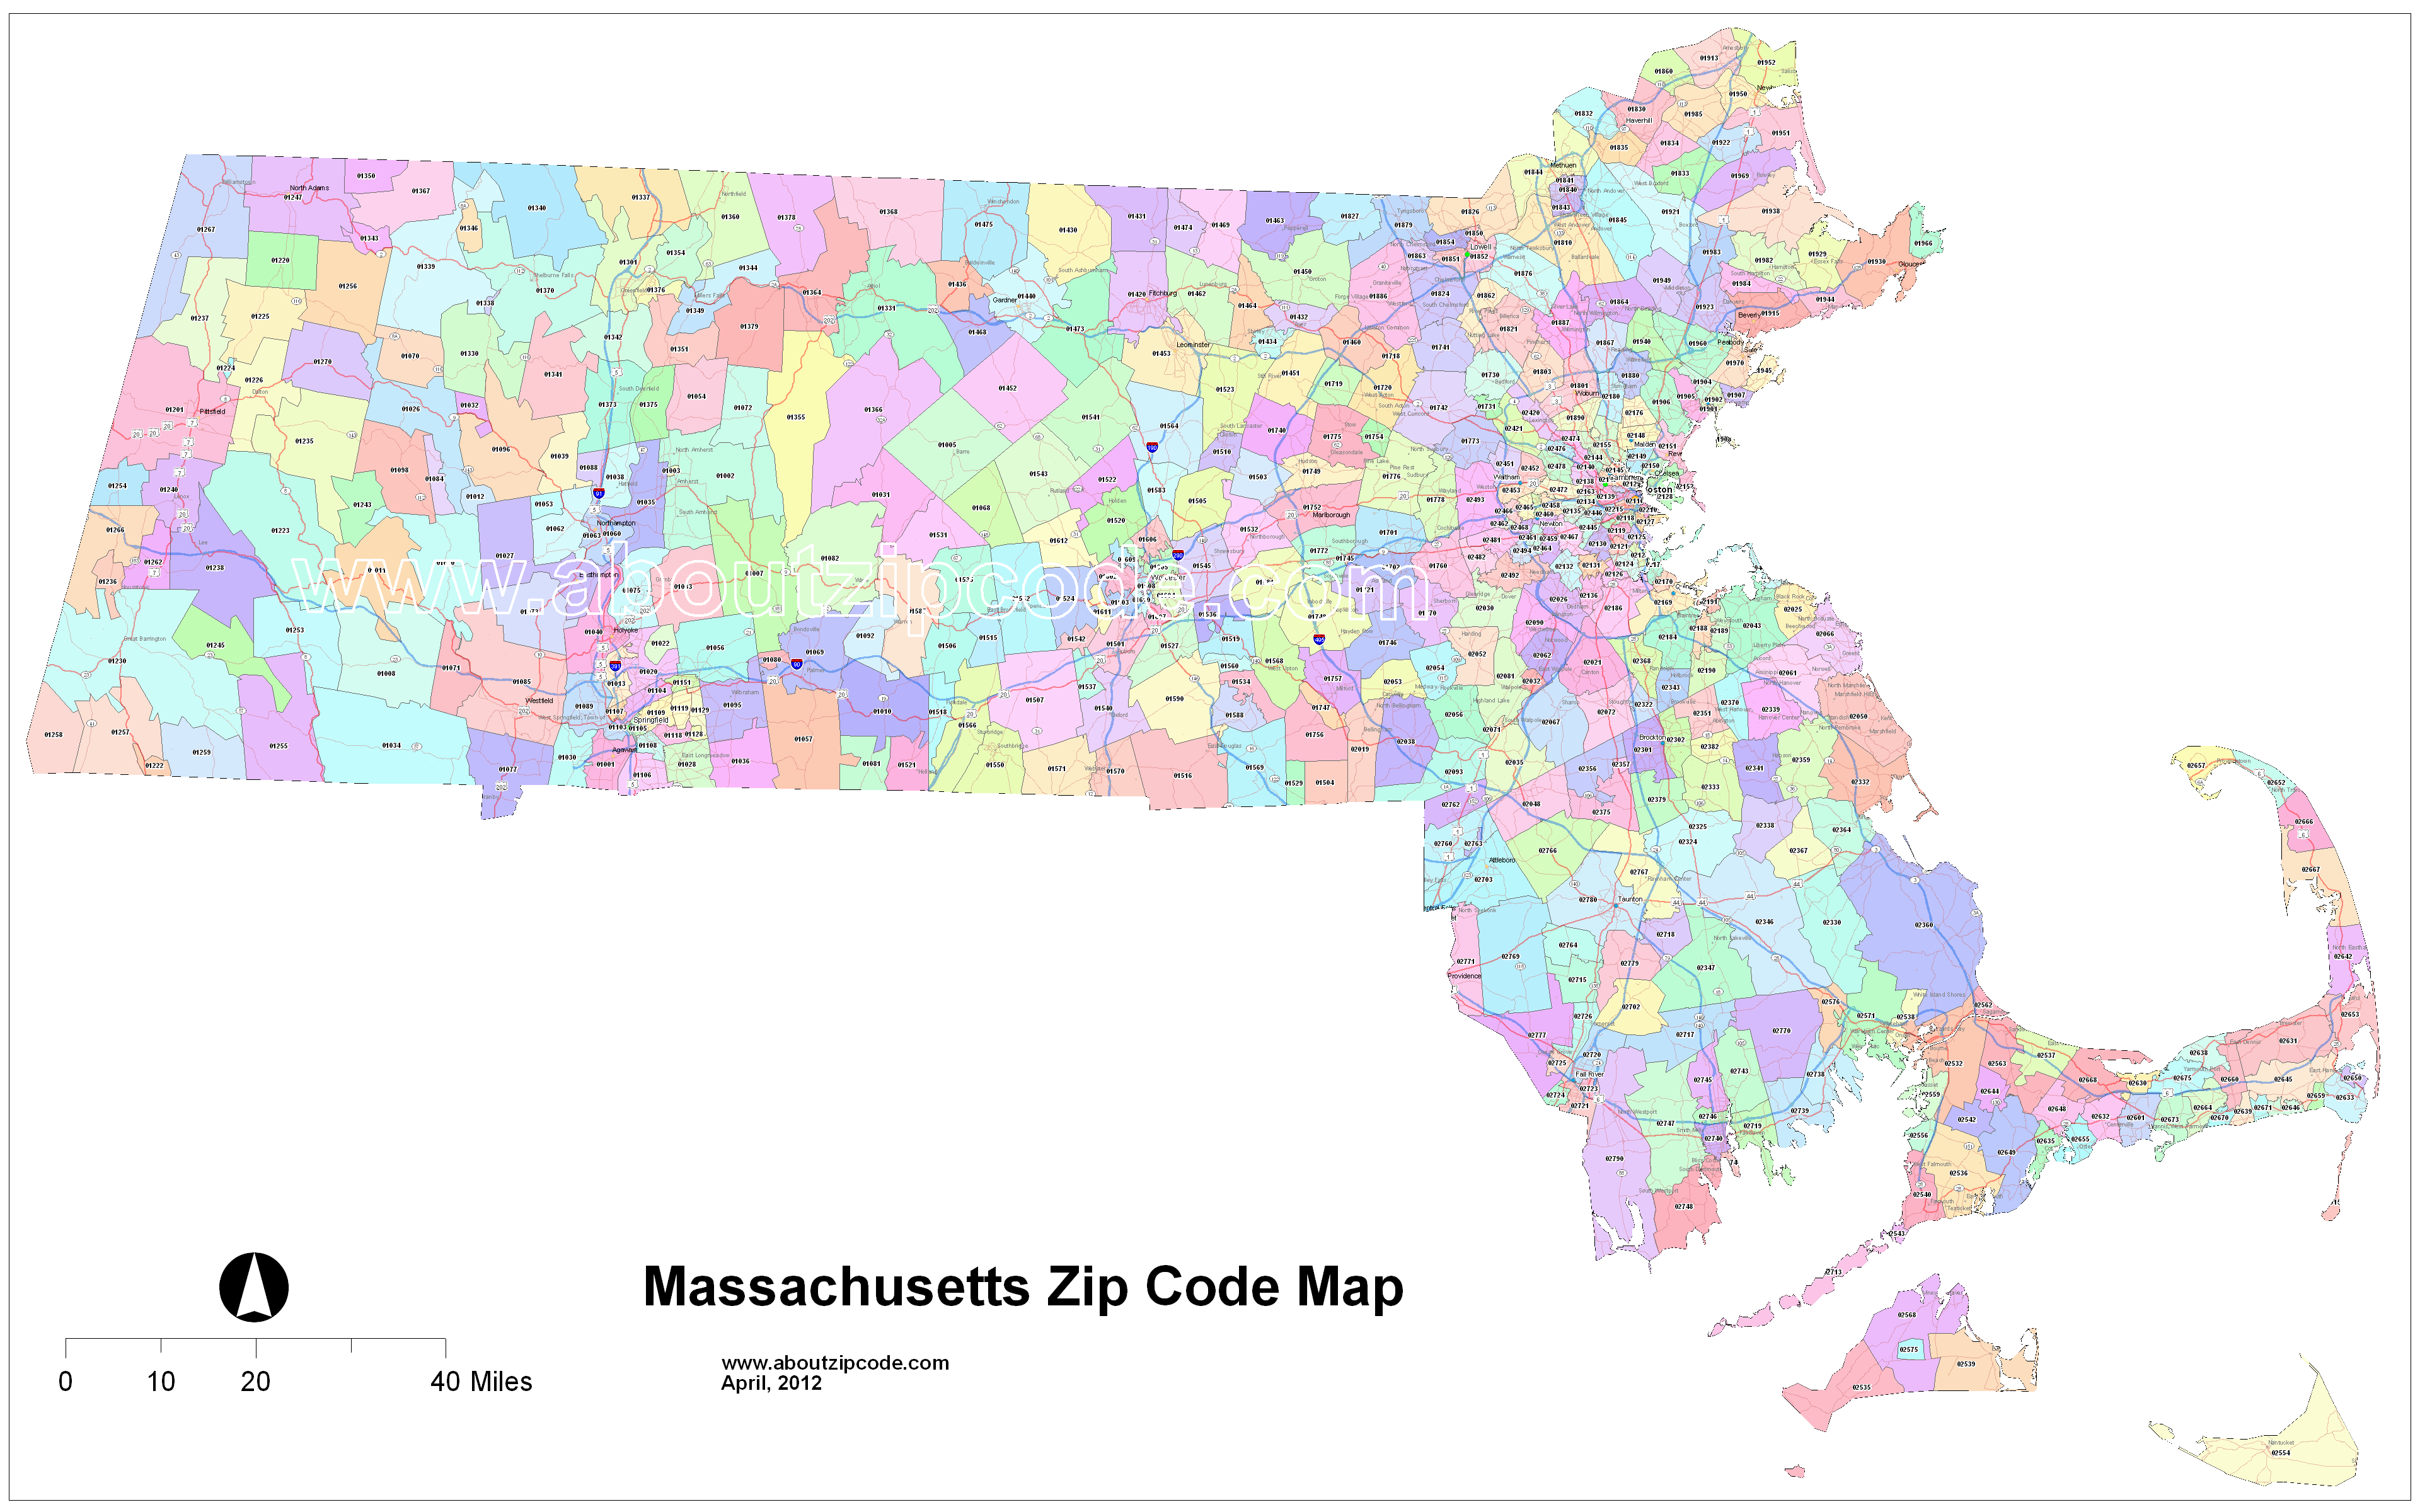 Massachusetts Zip Code Maps Free Massachusetts Zip Code Maps